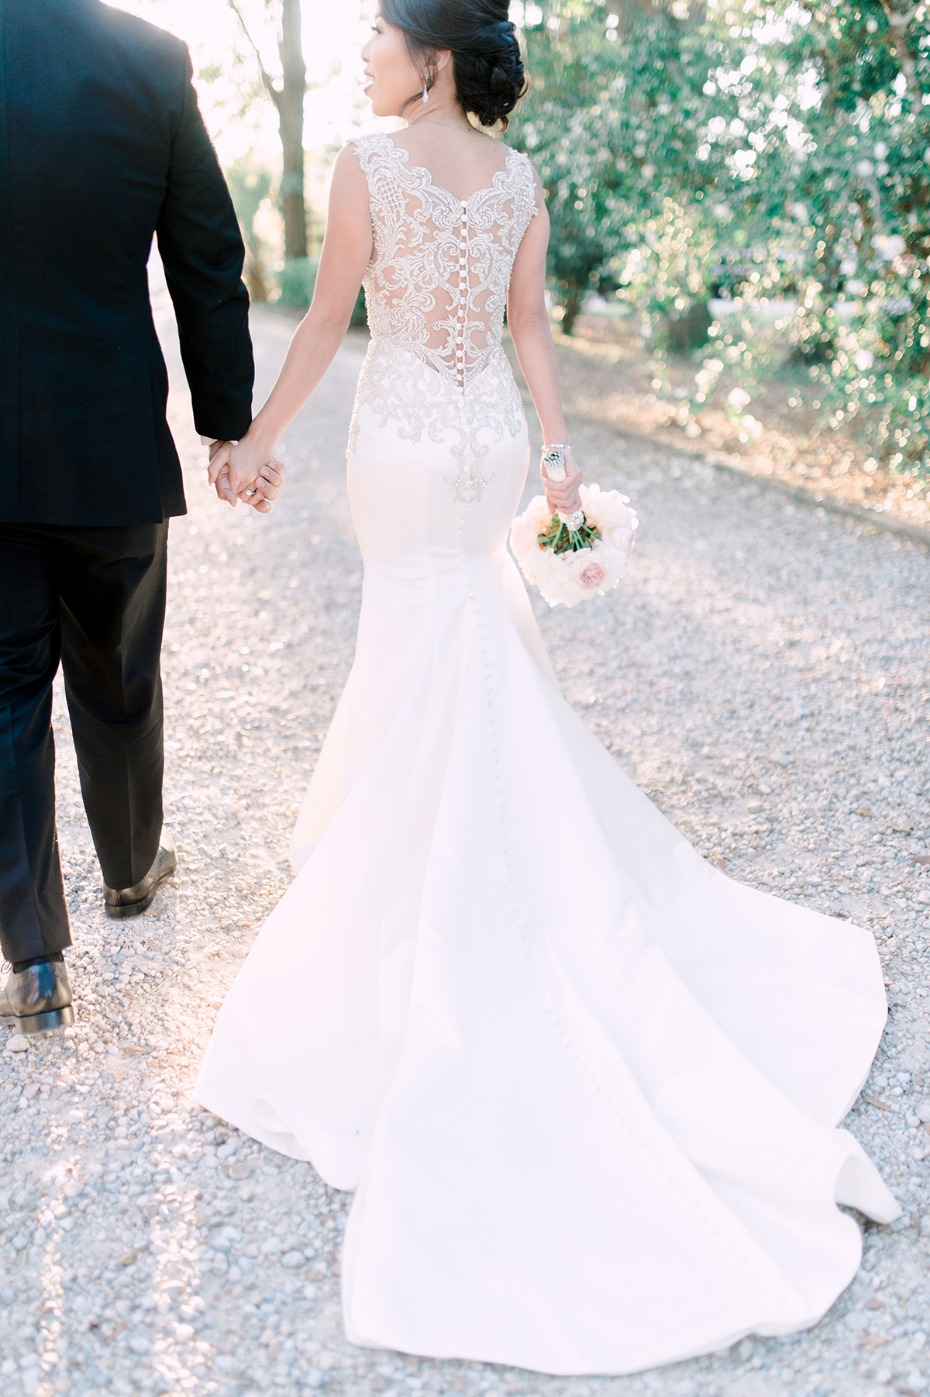 glamorous wedding dress with elegant wedding sheer back